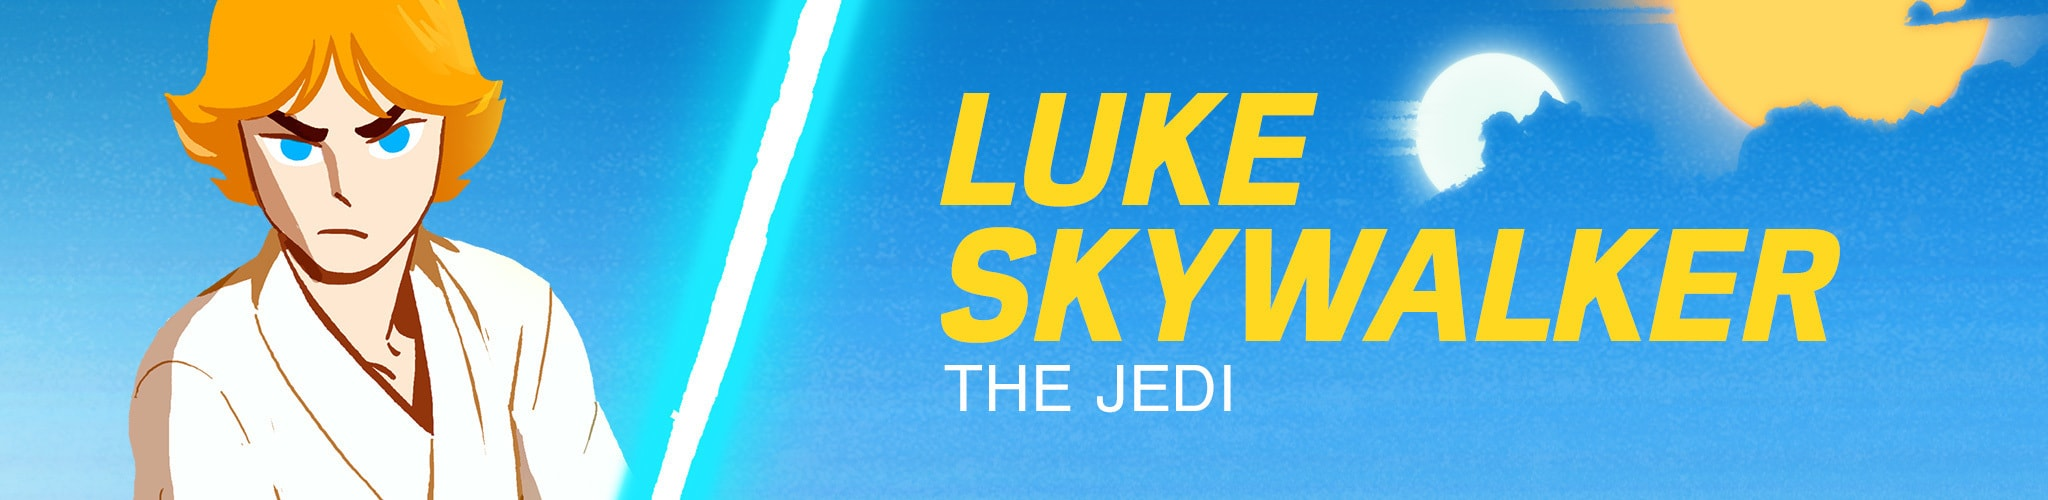 Luke Skywalker - The Jedi